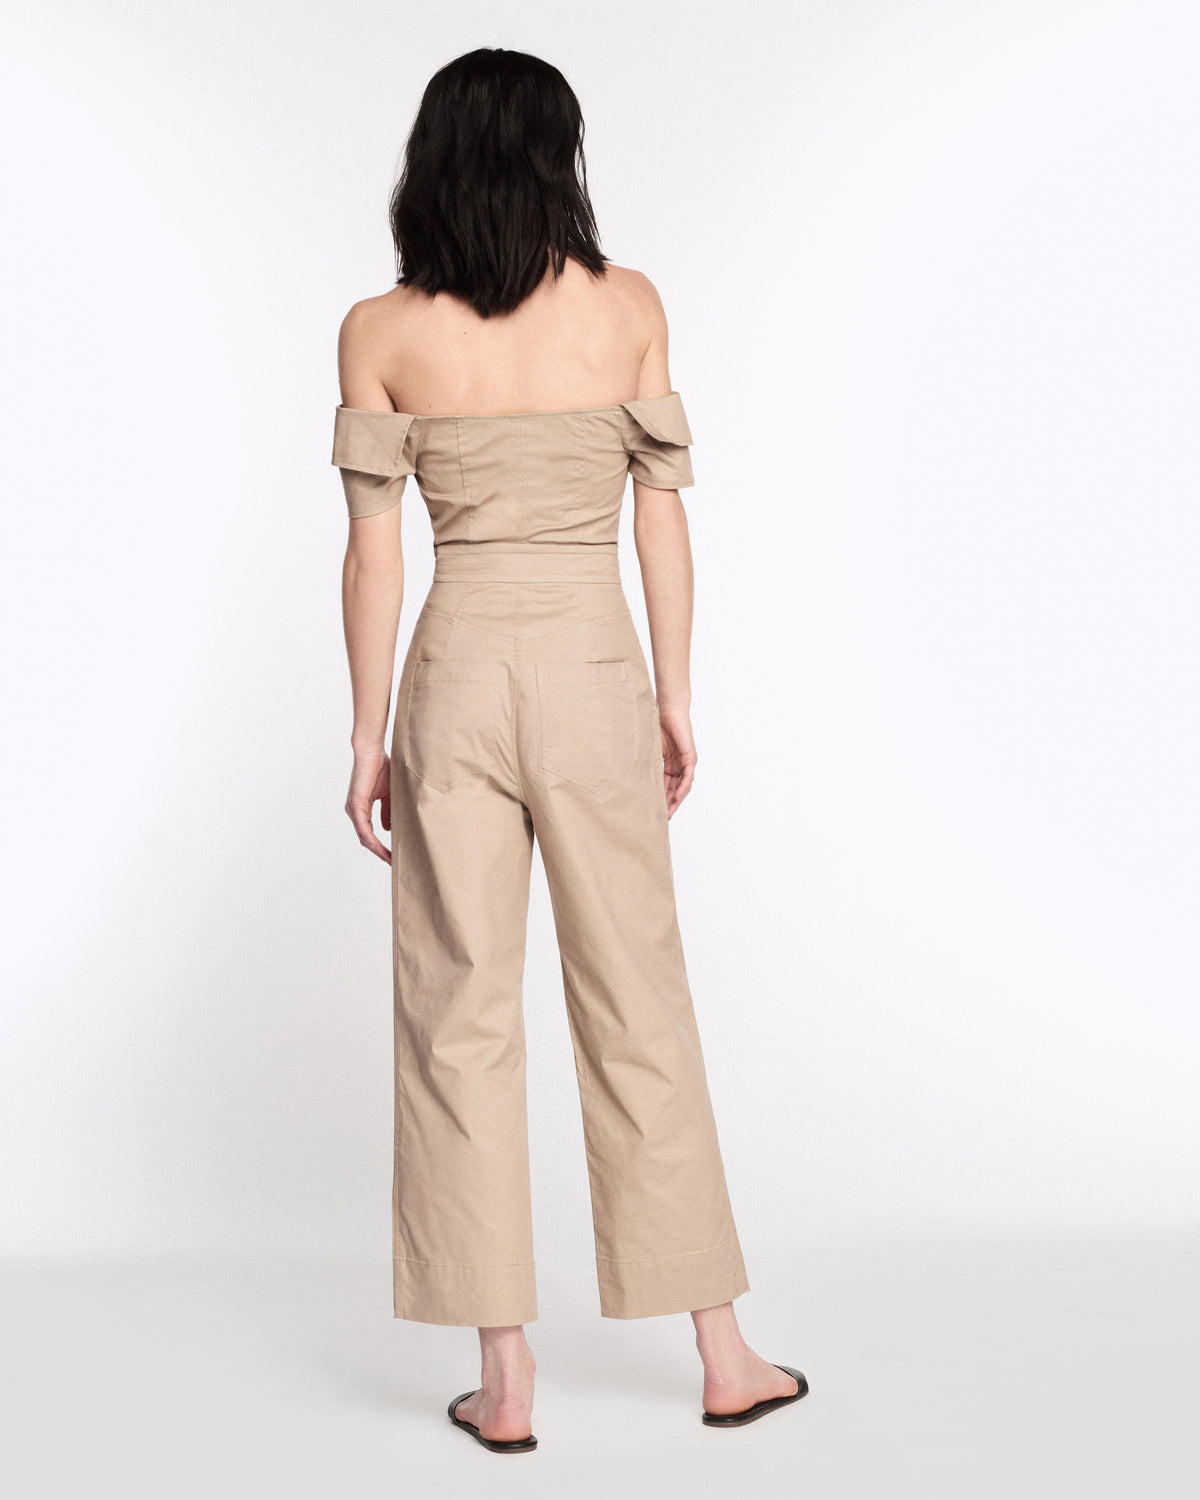 Rylan Canvas Jumpsuit in Sandshell